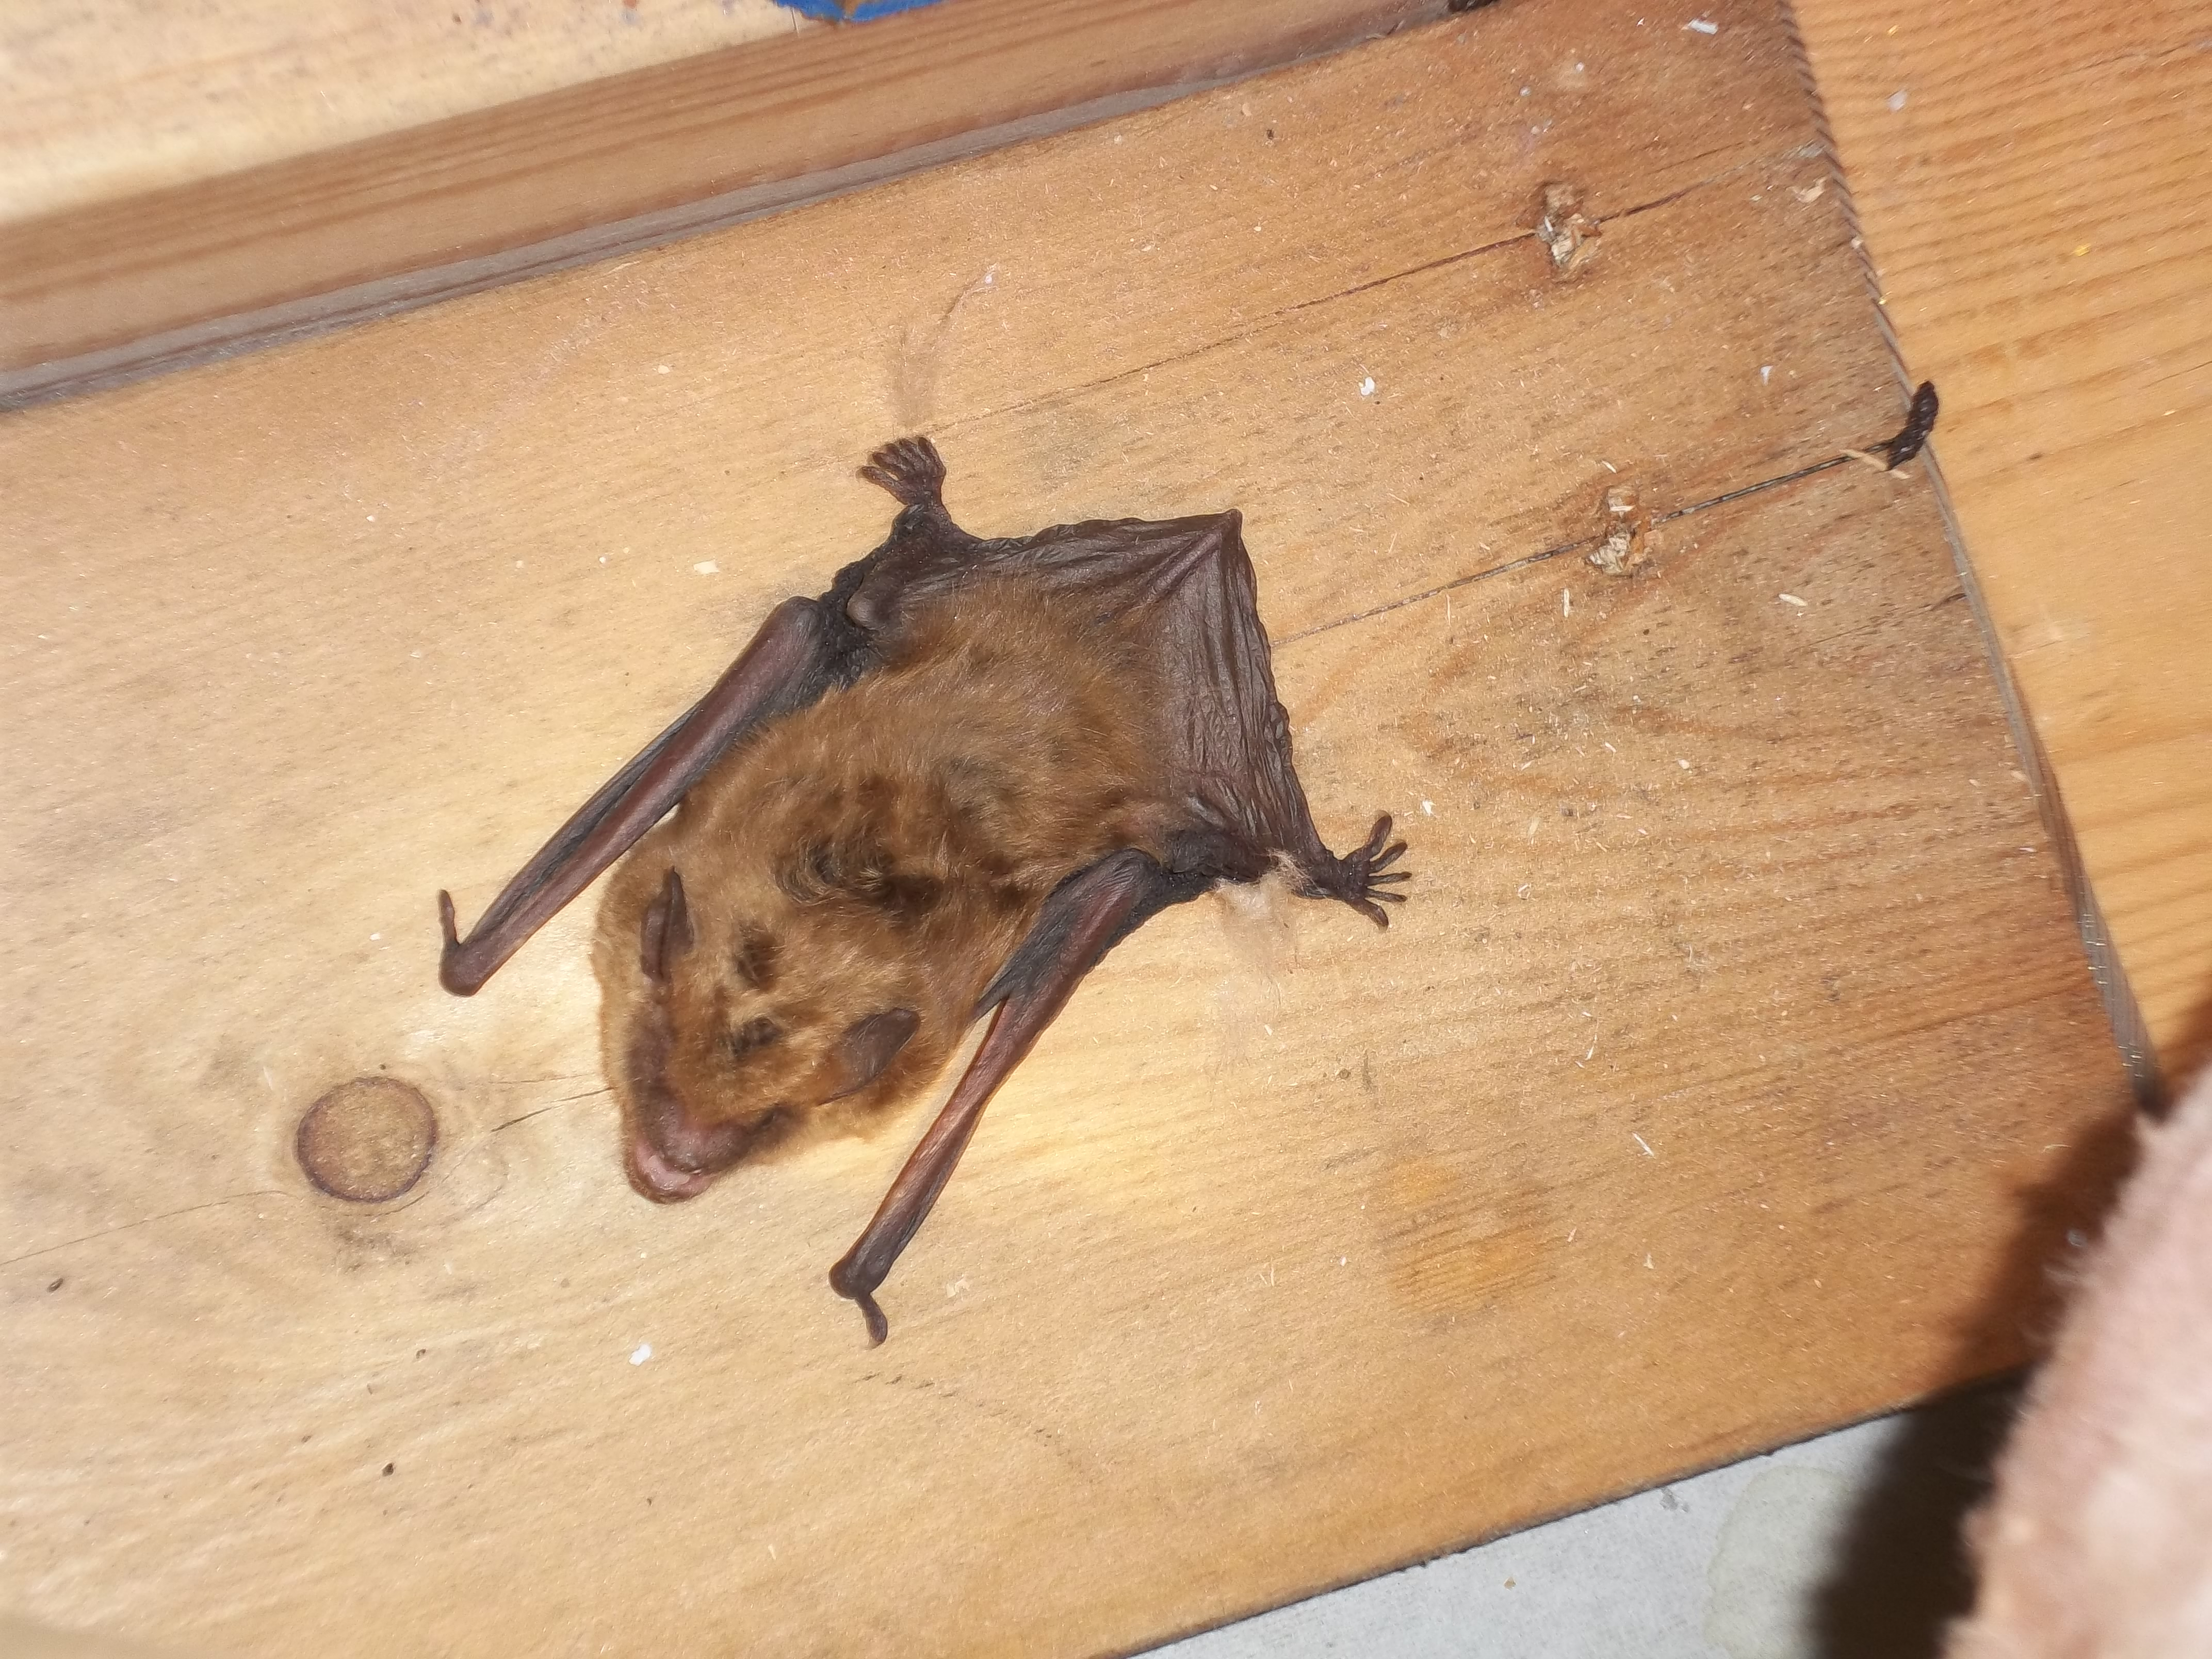 How can you get rid of bats in winter?